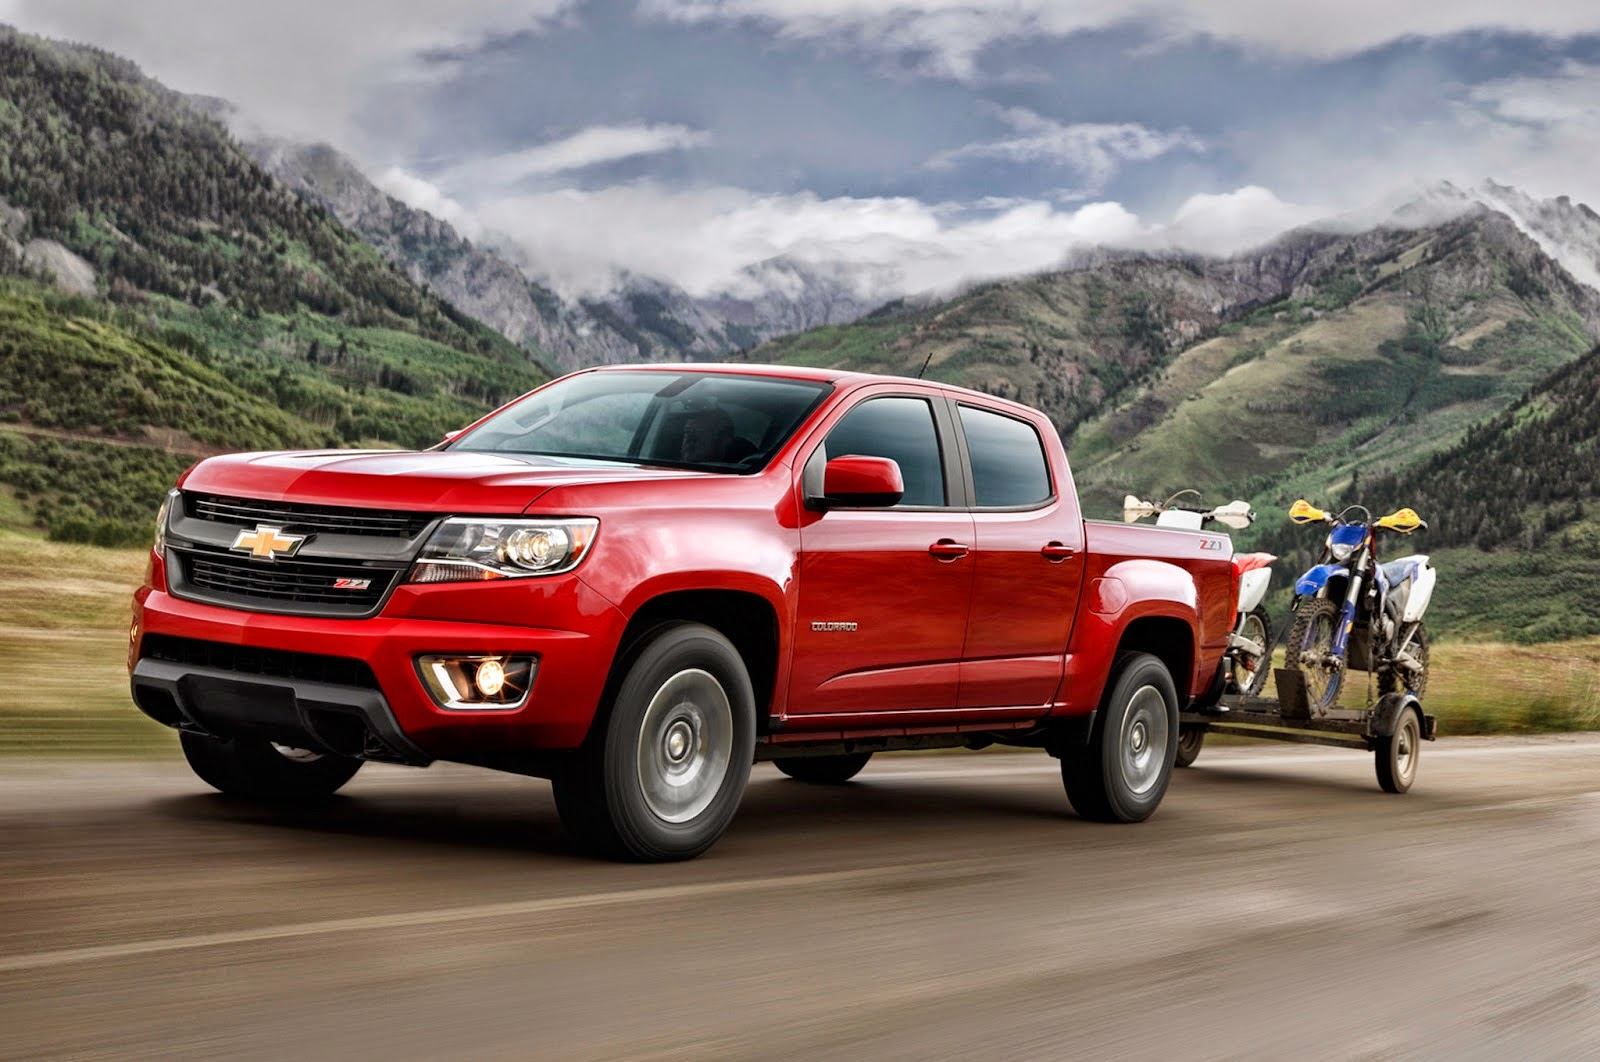 2015 Chevy Colorado Is Segment Fuel Economy Leader